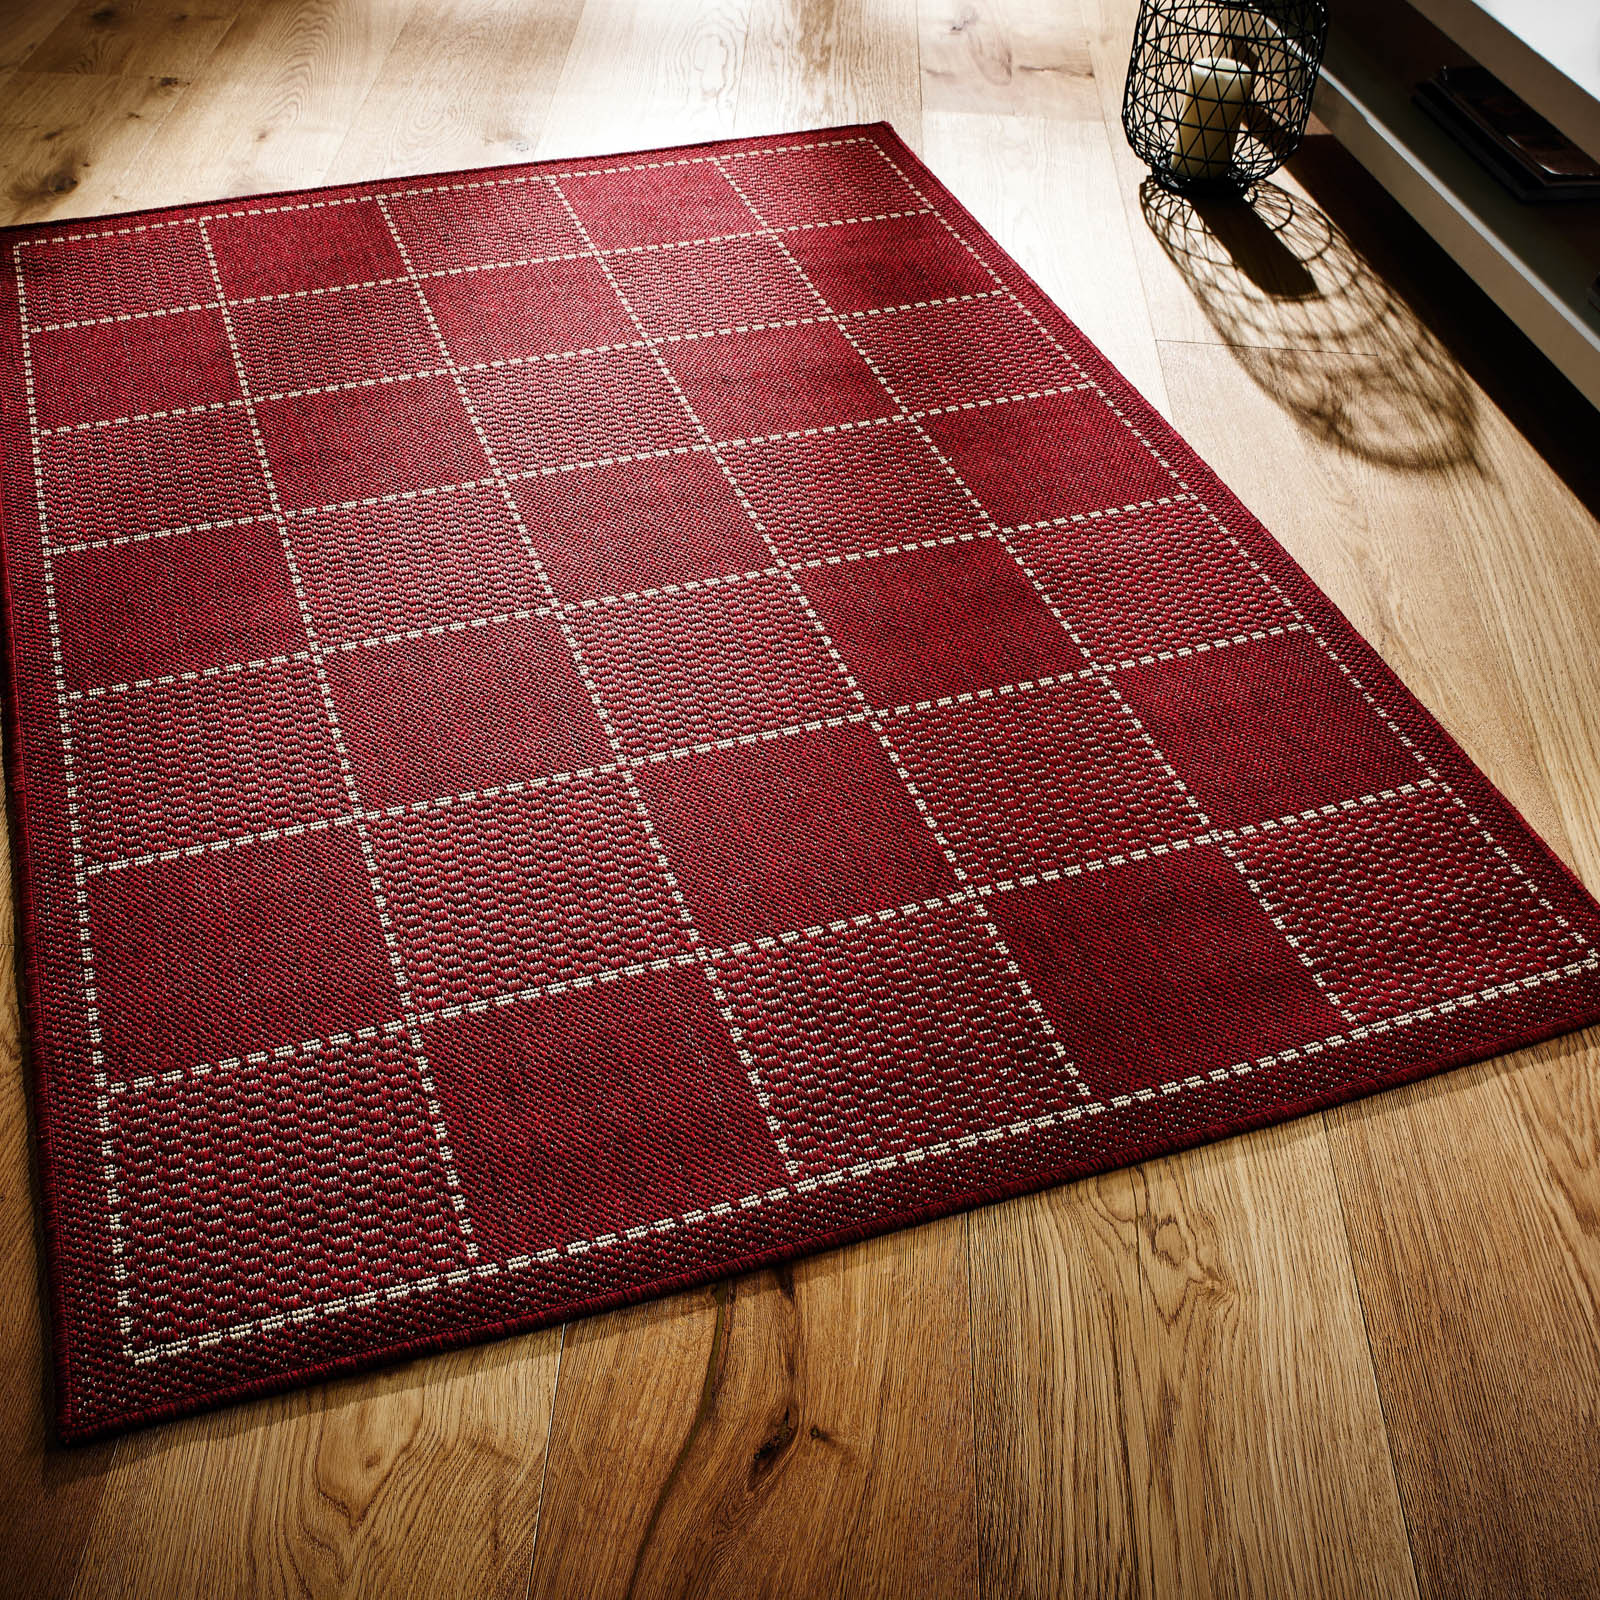 Super Sisalo Anti Slip Kitchen Rugs and Runners line